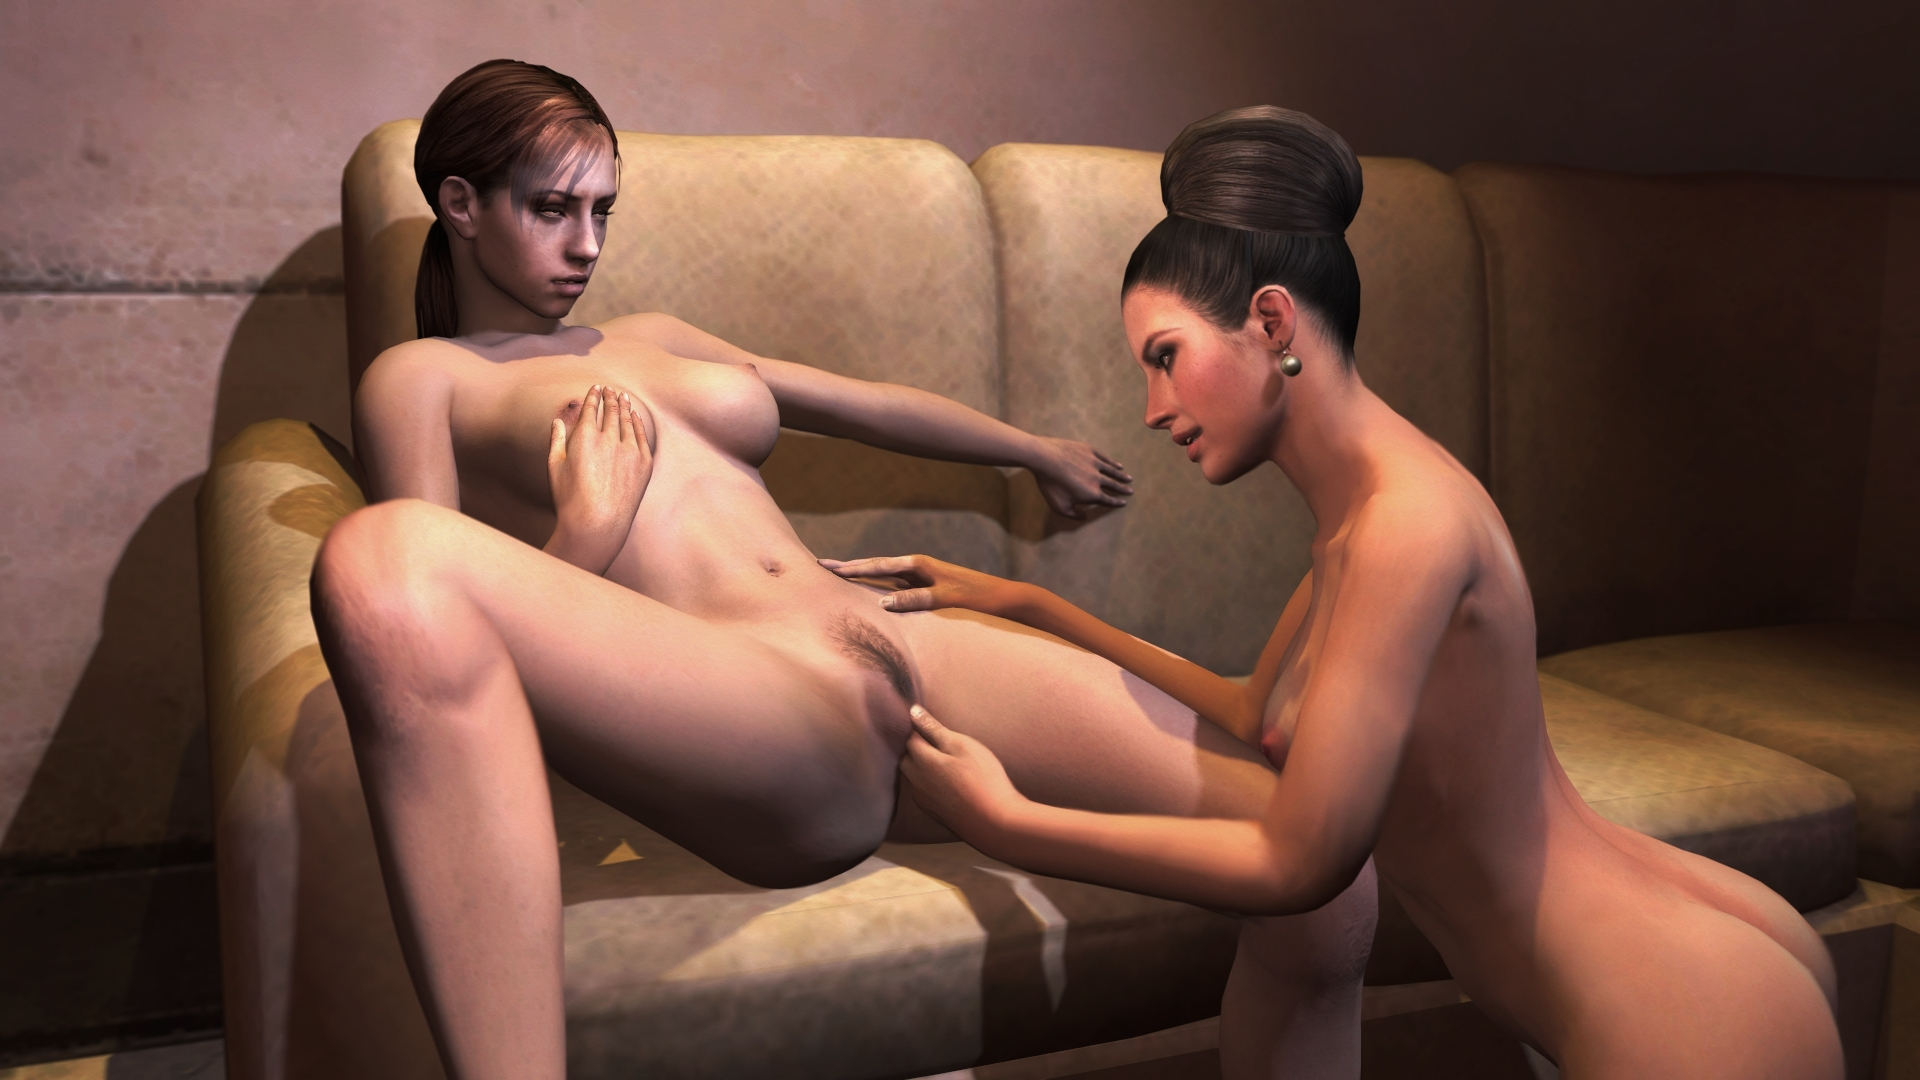 Resident evil hentei porn sexy galleries